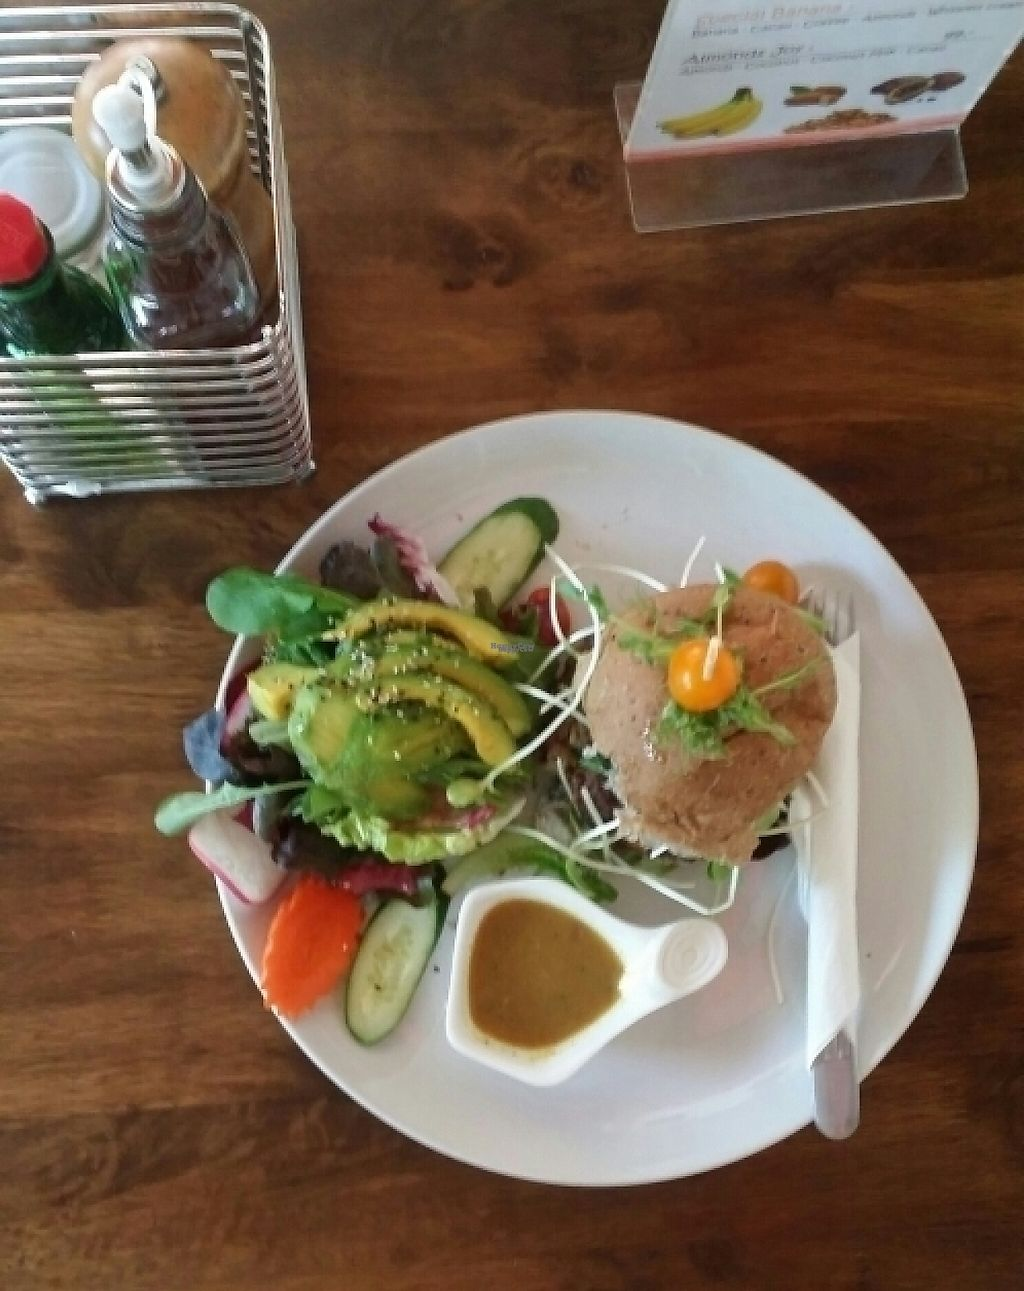 """Photo of Bubbles Live  by <a href=""""/members/profile/Mike%20Munsie"""">Mike Munsie</a> <br/>vegi burger with avo salad <br/> March 15, 2017  - <a href='/contact/abuse/image/53652/236667'>Report</a>"""